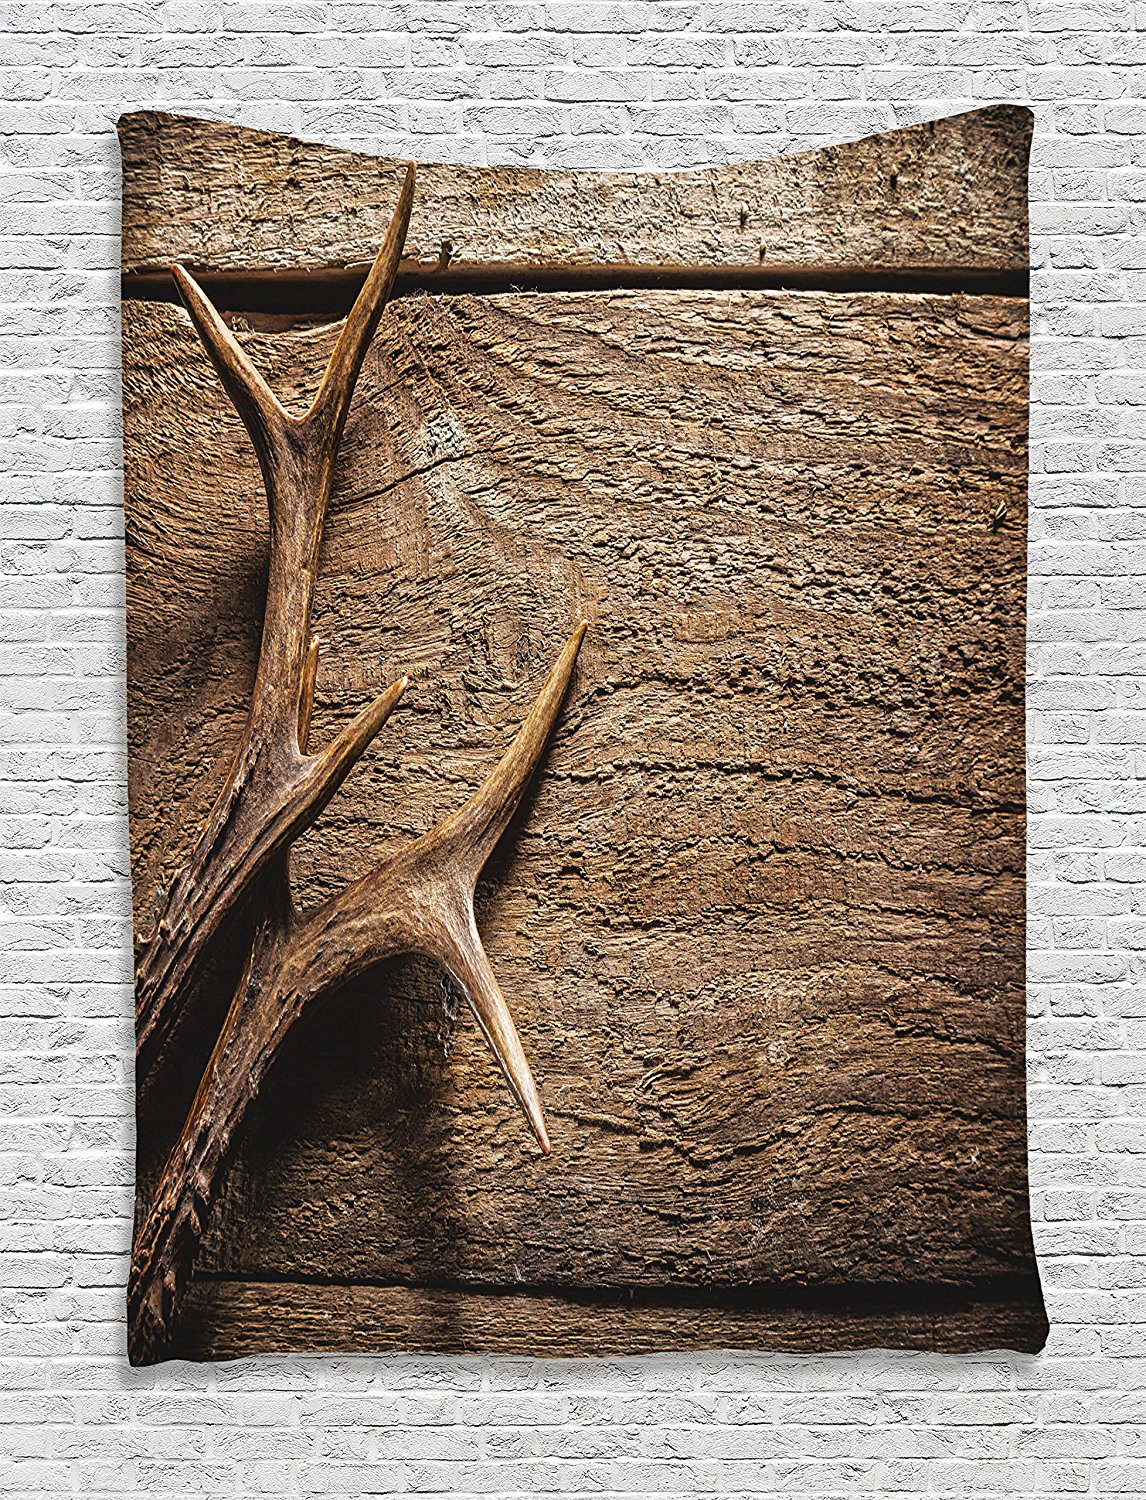 Antlers Decor Tapestry By Ambesonne, Deer Antlers On Wood Table Rustic Texture Surface Hunting Season Decorating, Bedroom Living Room Dorm Decor, 40Wx60L Inches